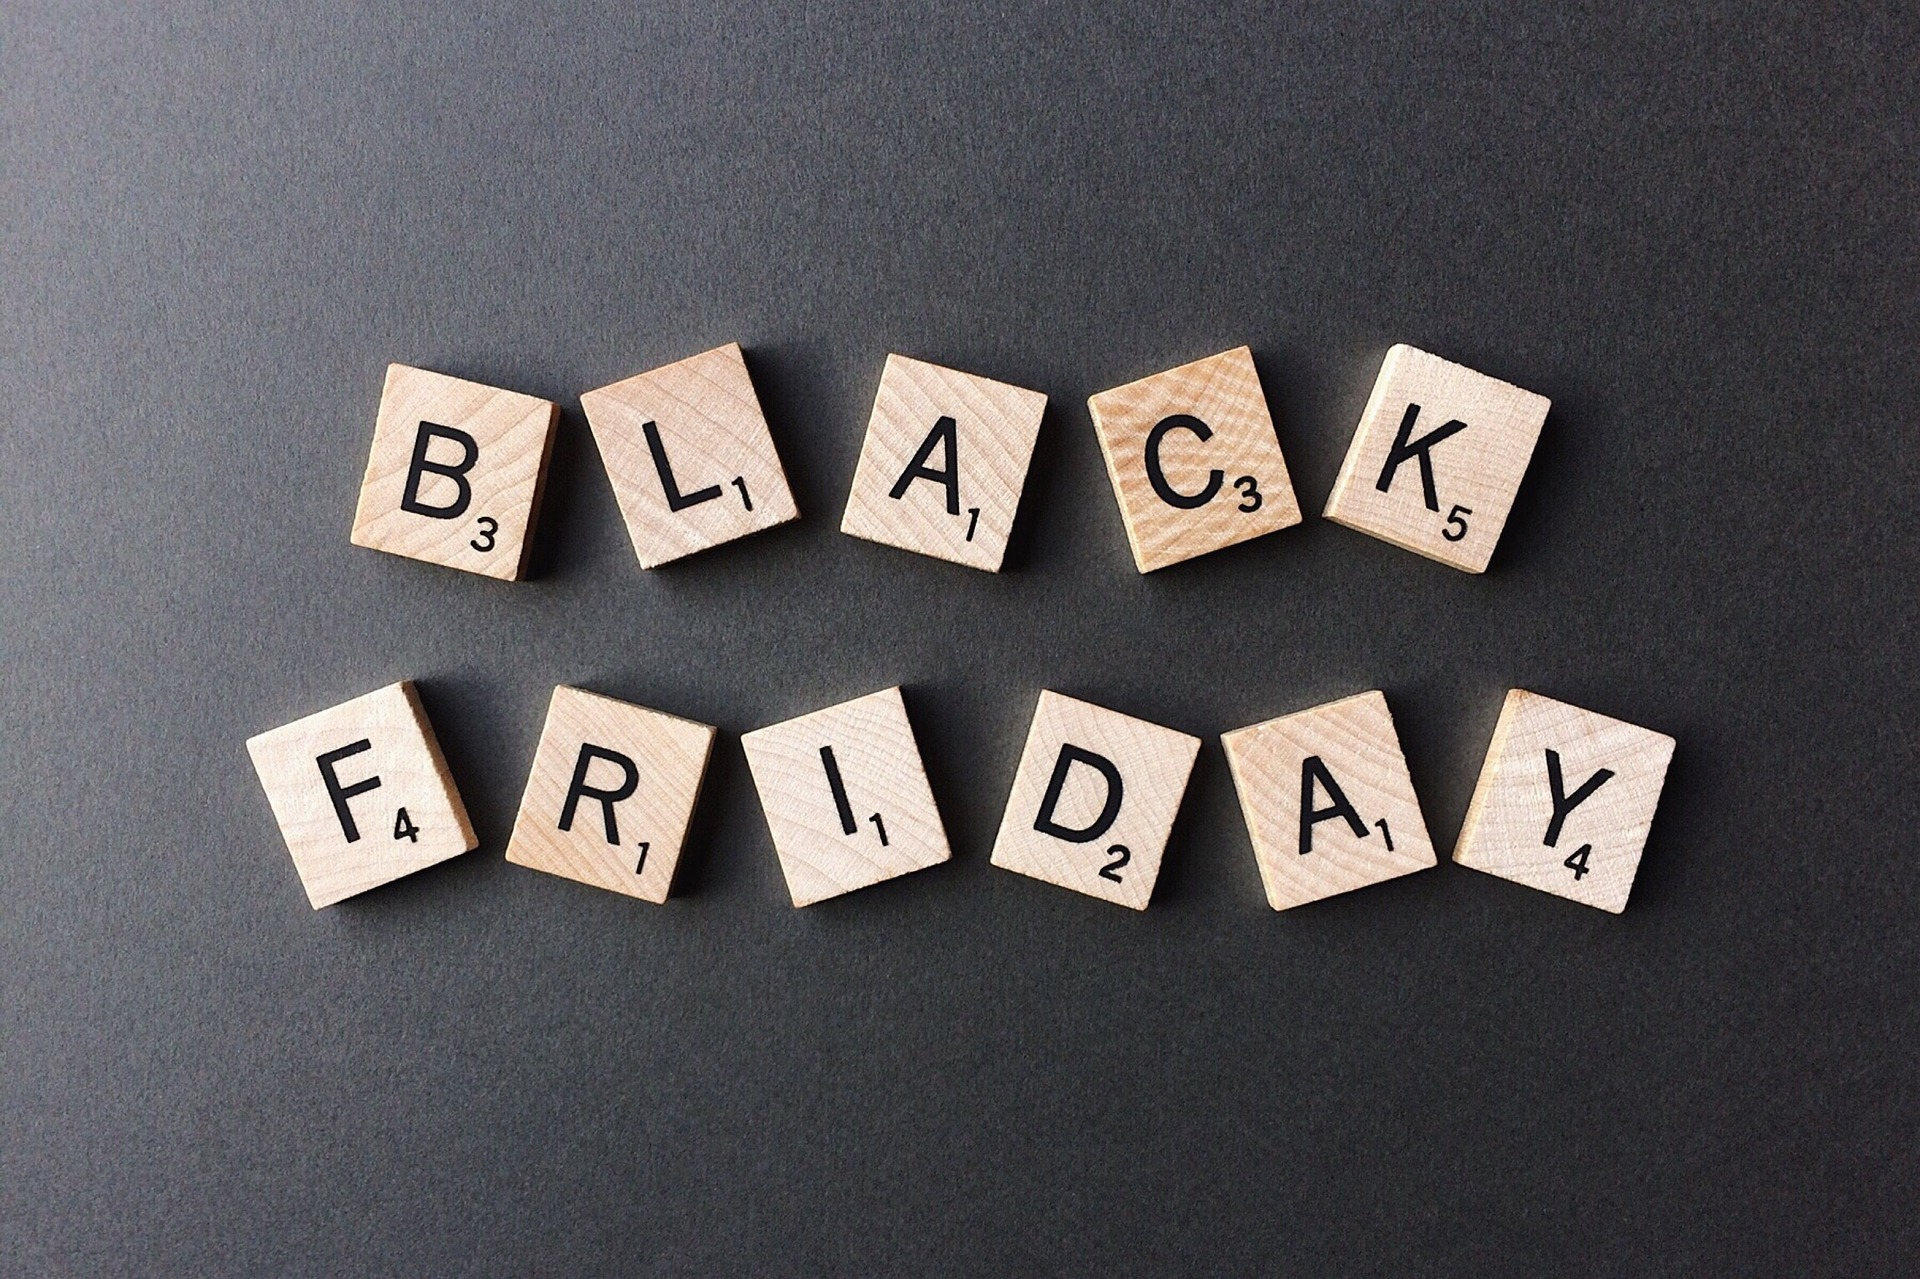 black-friday-2925476_1920.jpg